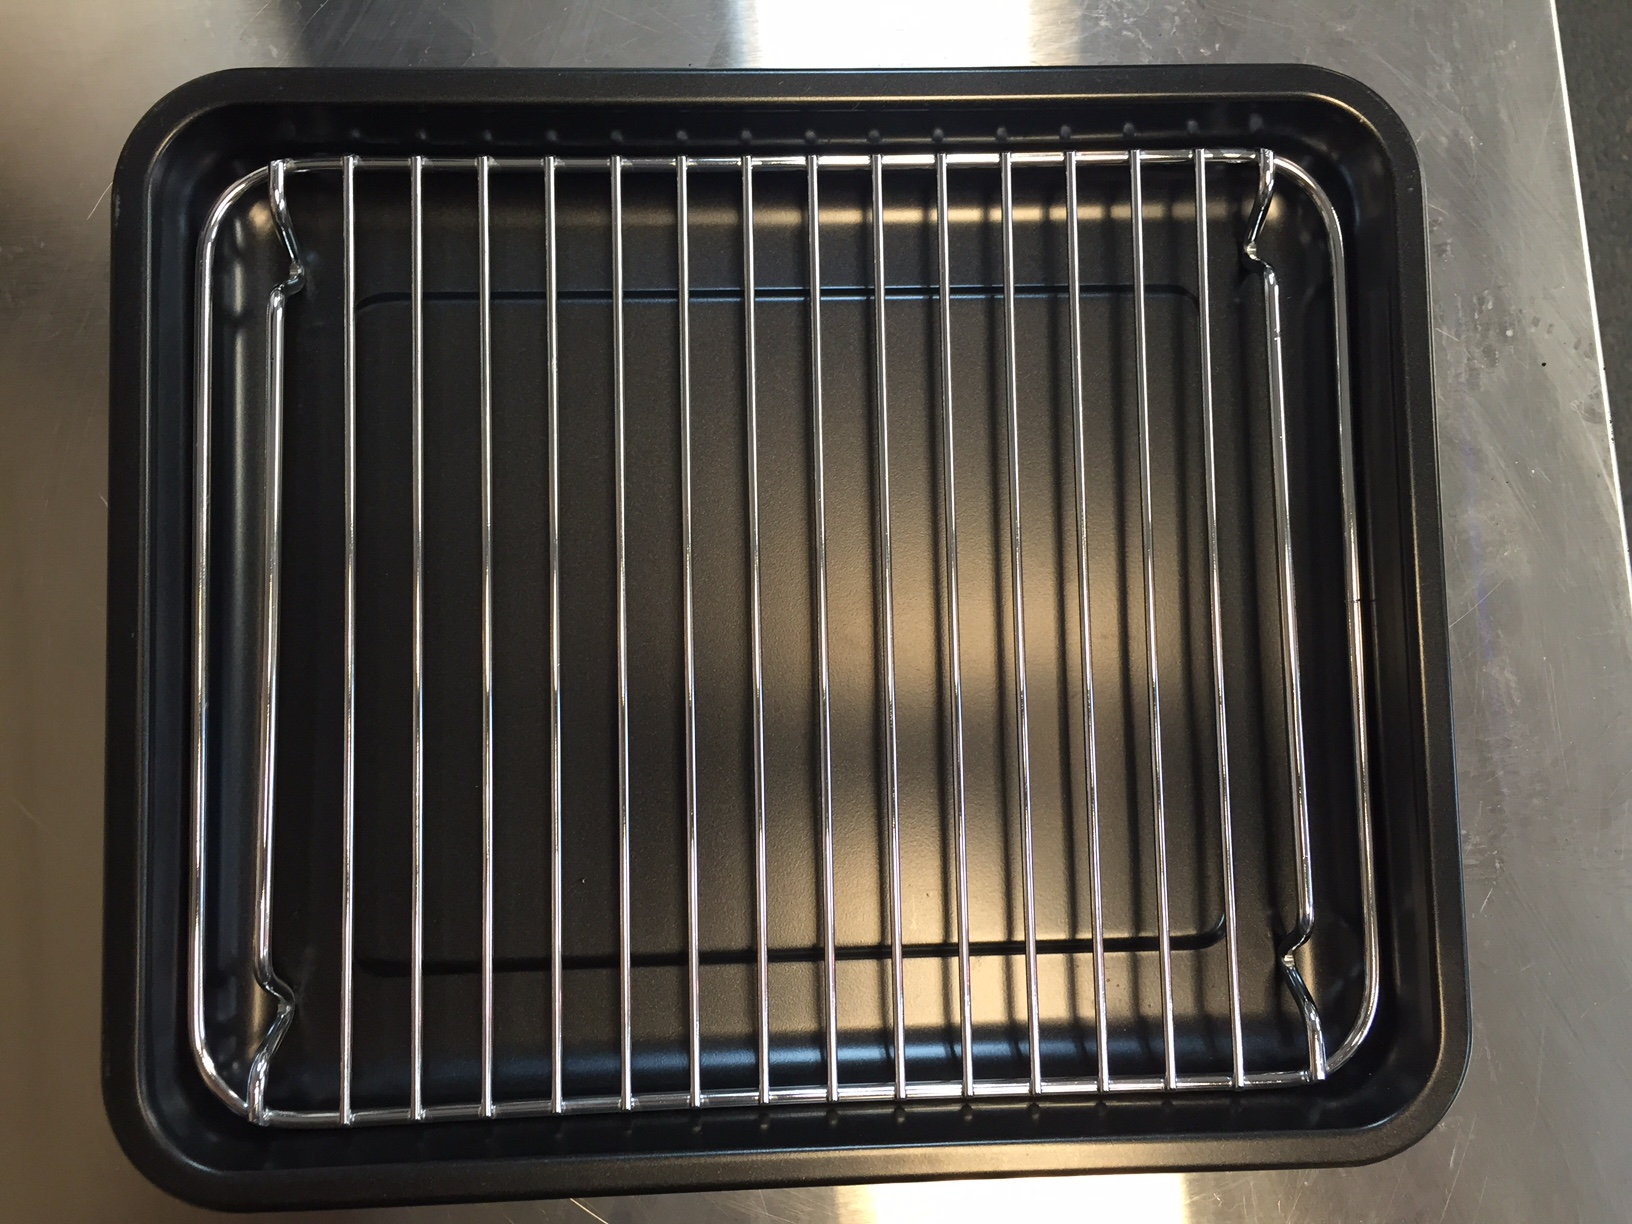 Banking pan with wire rack, Dualit mini oven 89220 - Electra-craft.com